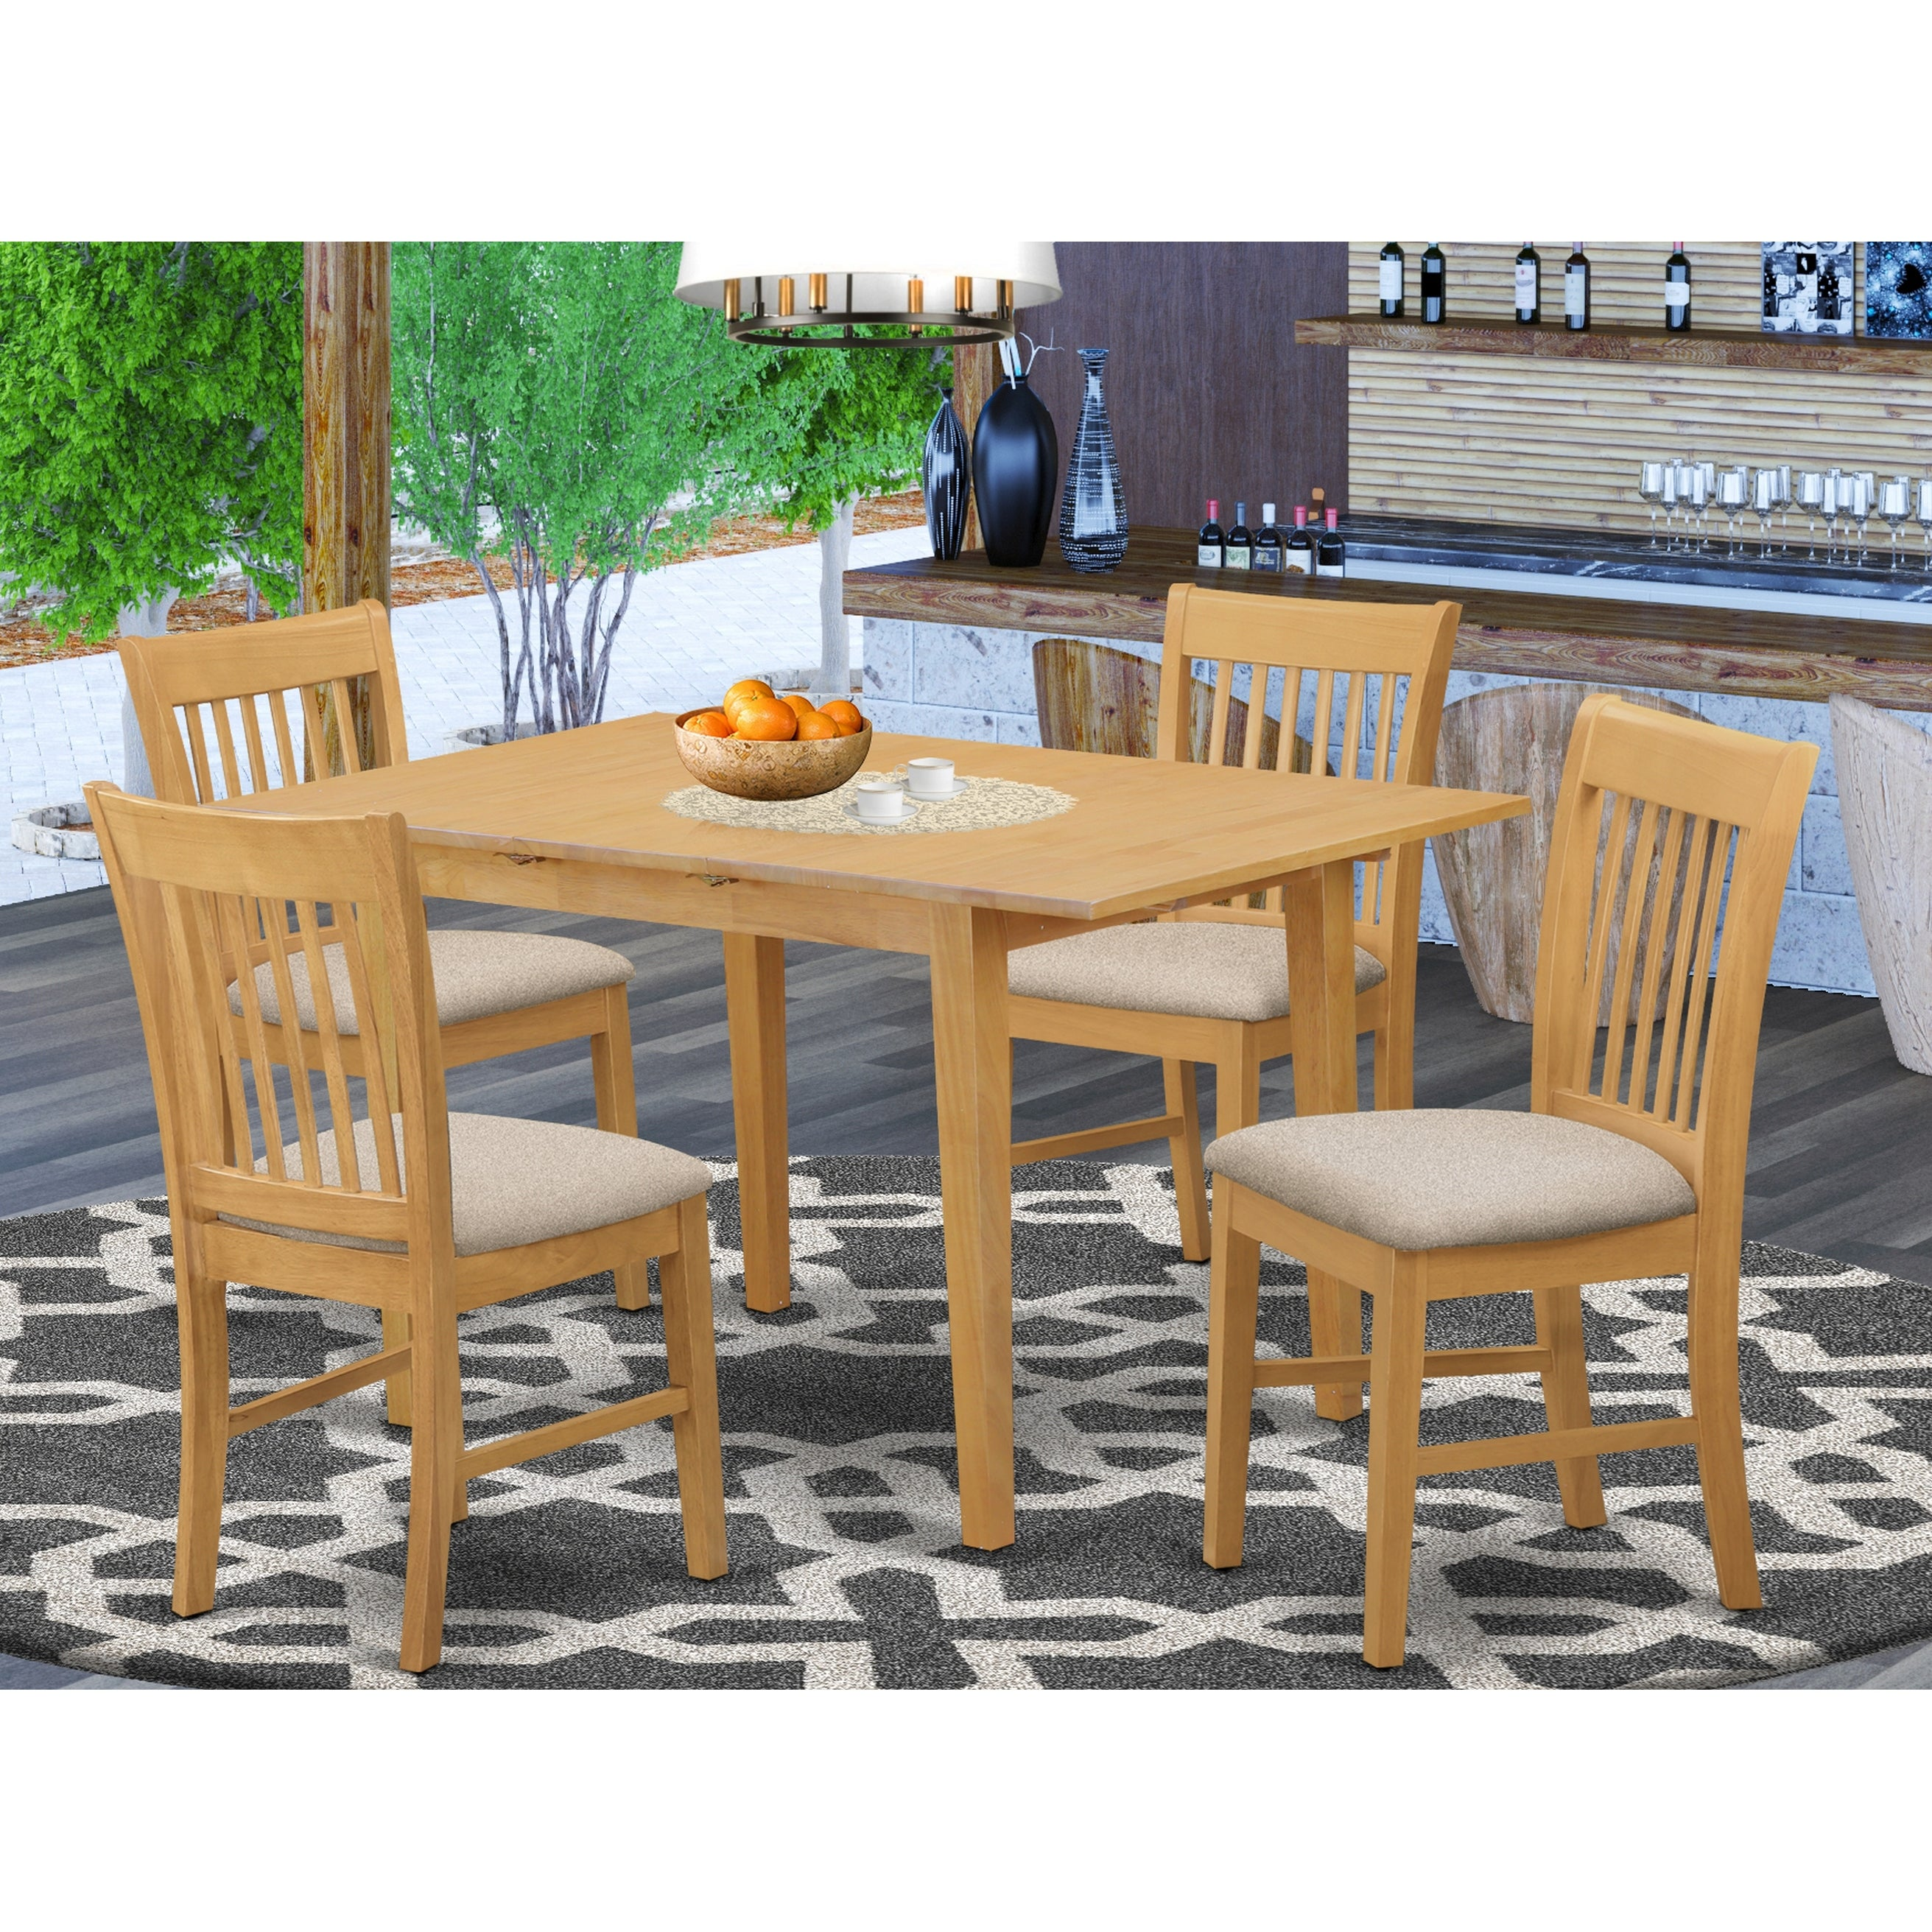 Oak Table And 4 Dining Table Chairs 5 Piece Dining Set Overstock 10201159 Nofk5 Oak C